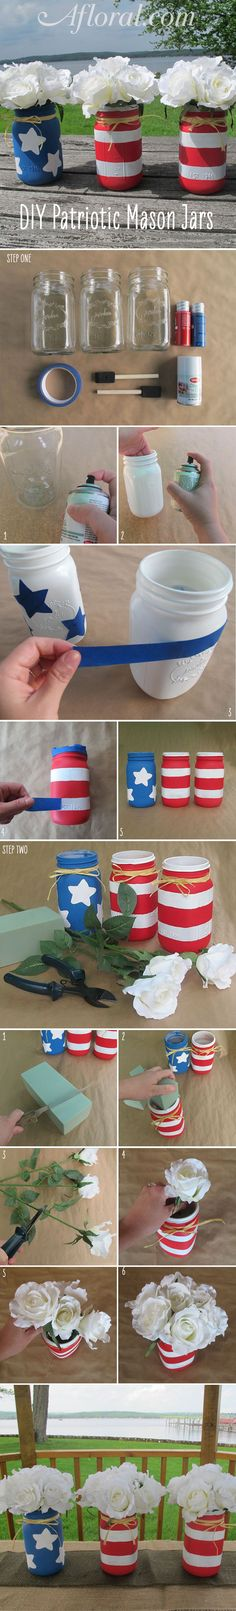 50 Enjoyable Fourth of July Party Ideas To Try In 2017 is part of Summer crafts Of July - Well! That's true your ultimate Fourth of July party ideas will lasts only for one night, but memories last forever These are just few things you can do Patriotic Party, Patriotic Crafts, July Crafts, Summer Crafts, Holiday Crafts, Holiday Fun, Festive, Holiday Decor, 4. Juli Party